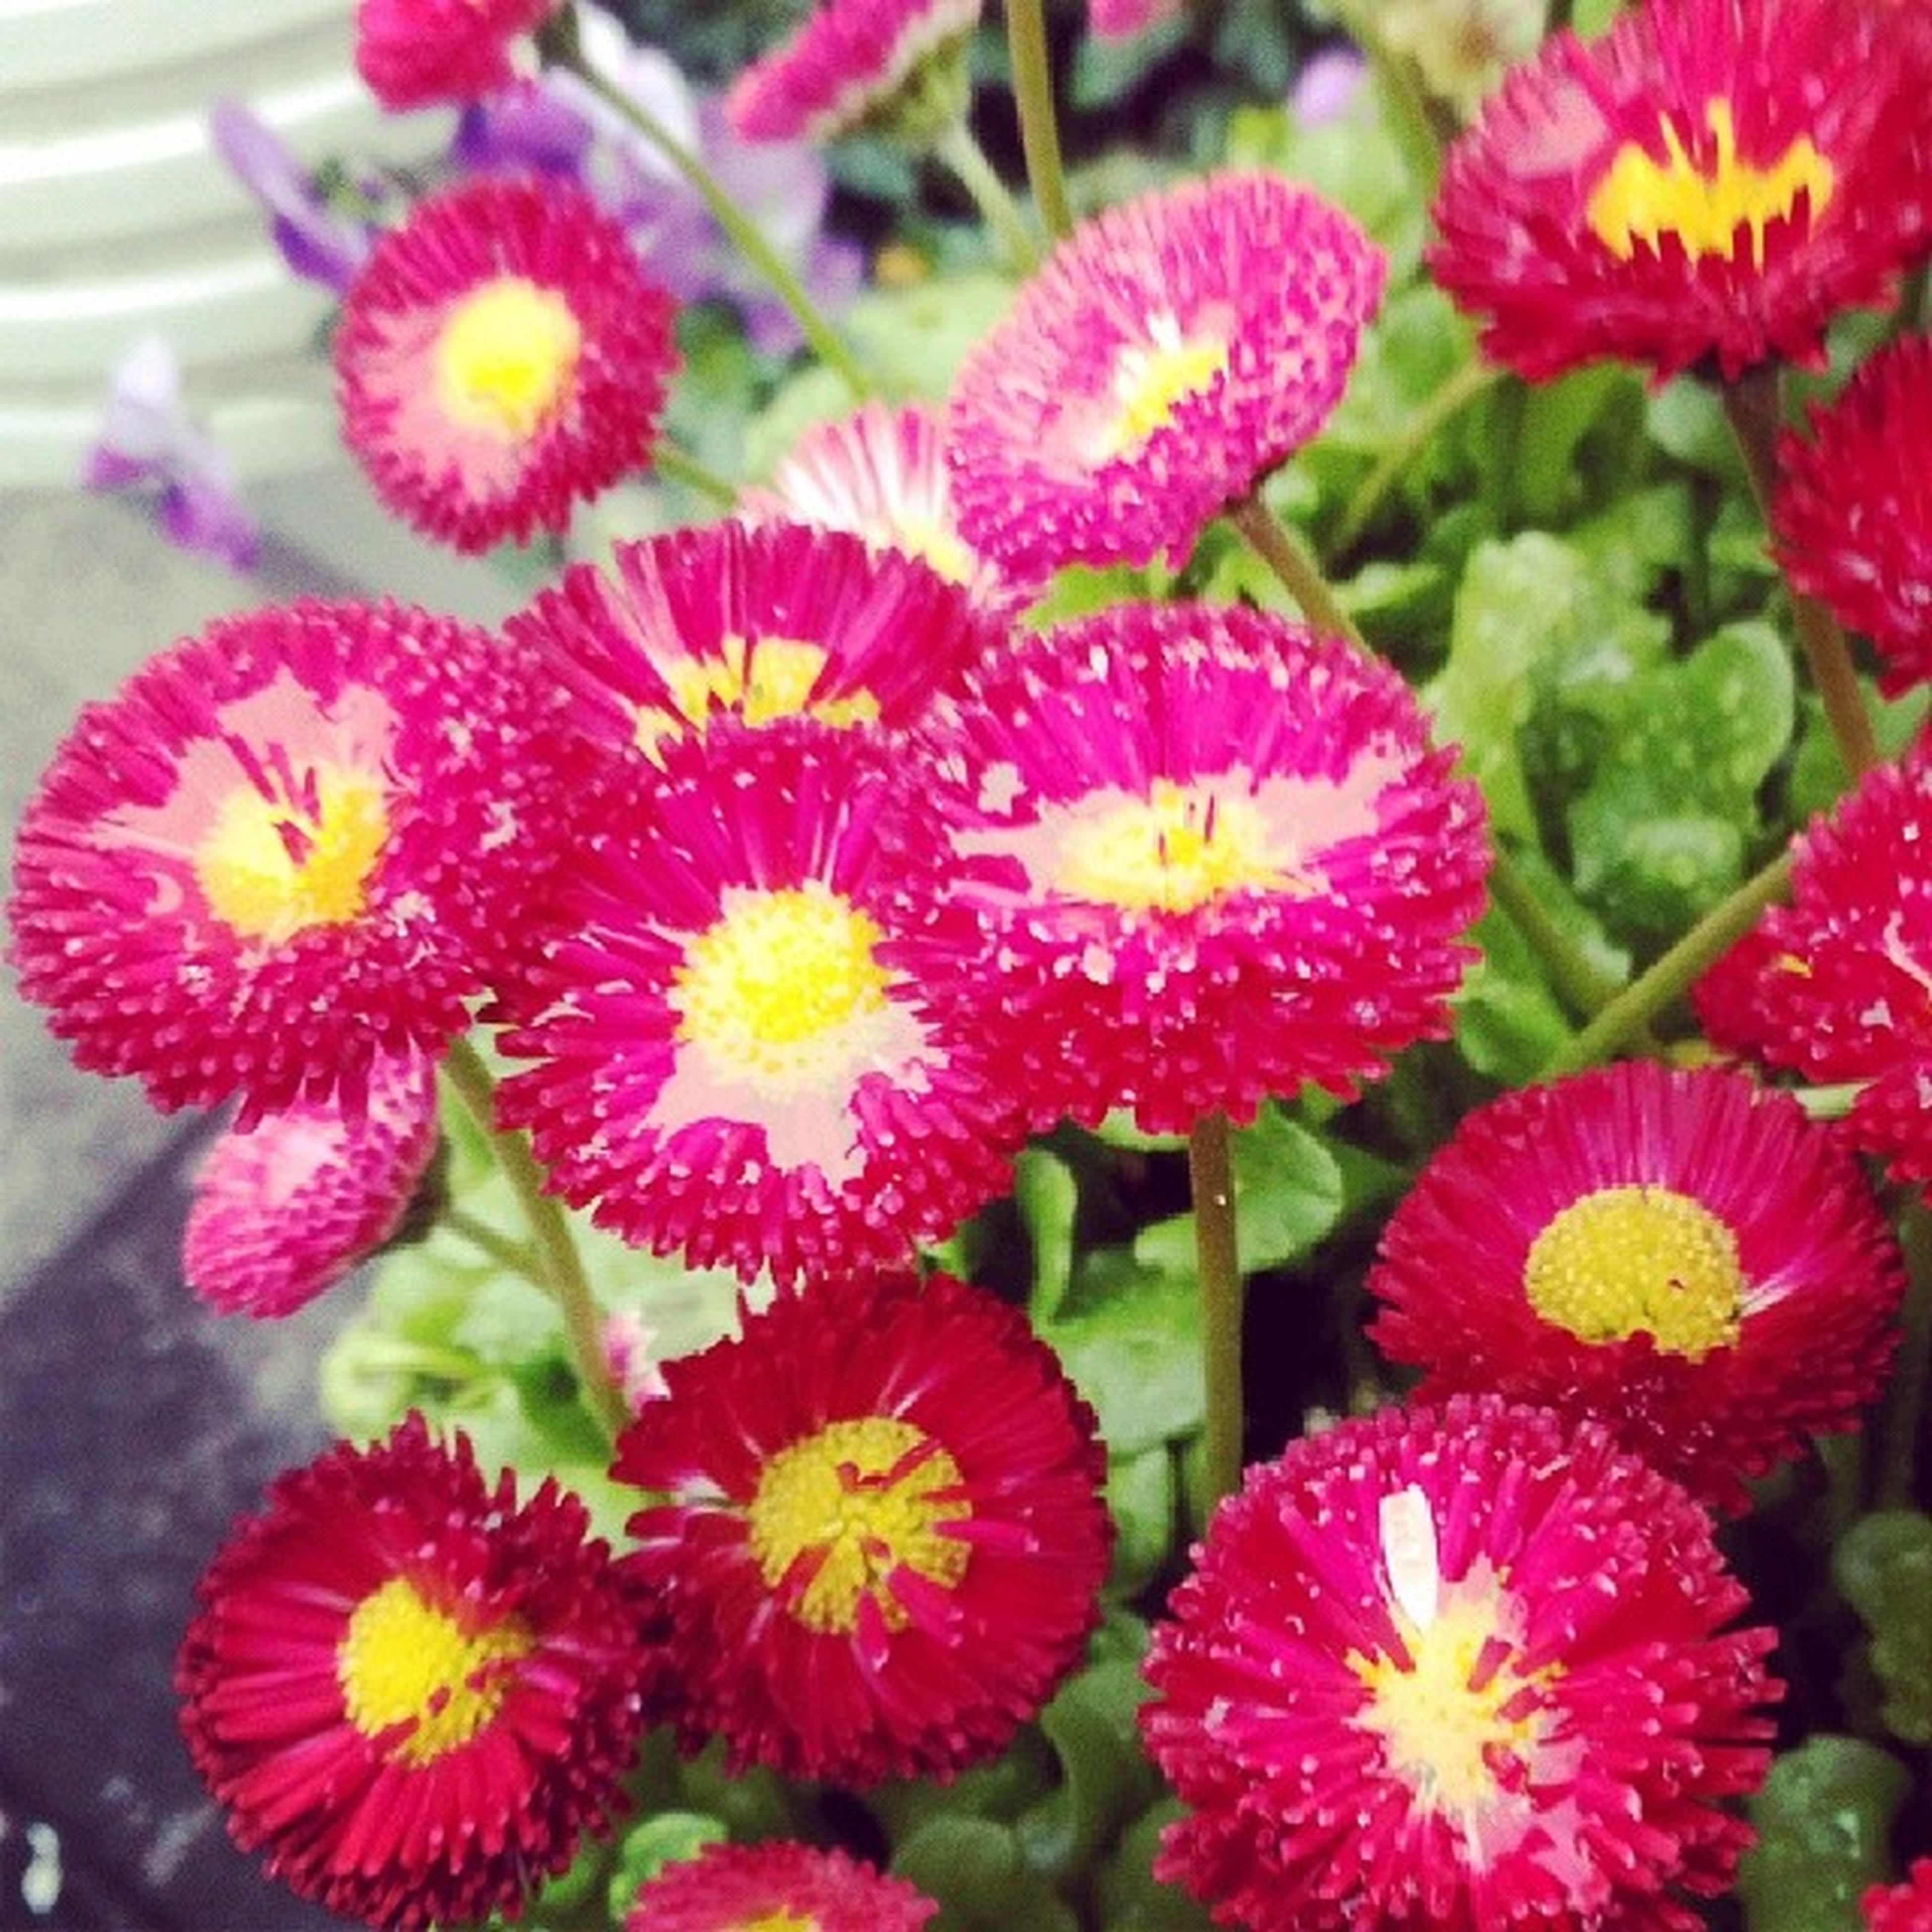 flower, freshness, petal, fragility, flower head, growth, beauty in nature, blooming, plant, close-up, nature, high angle view, pink color, red, focus on foreground, in bloom, day, no people, outdoors, park - man made space